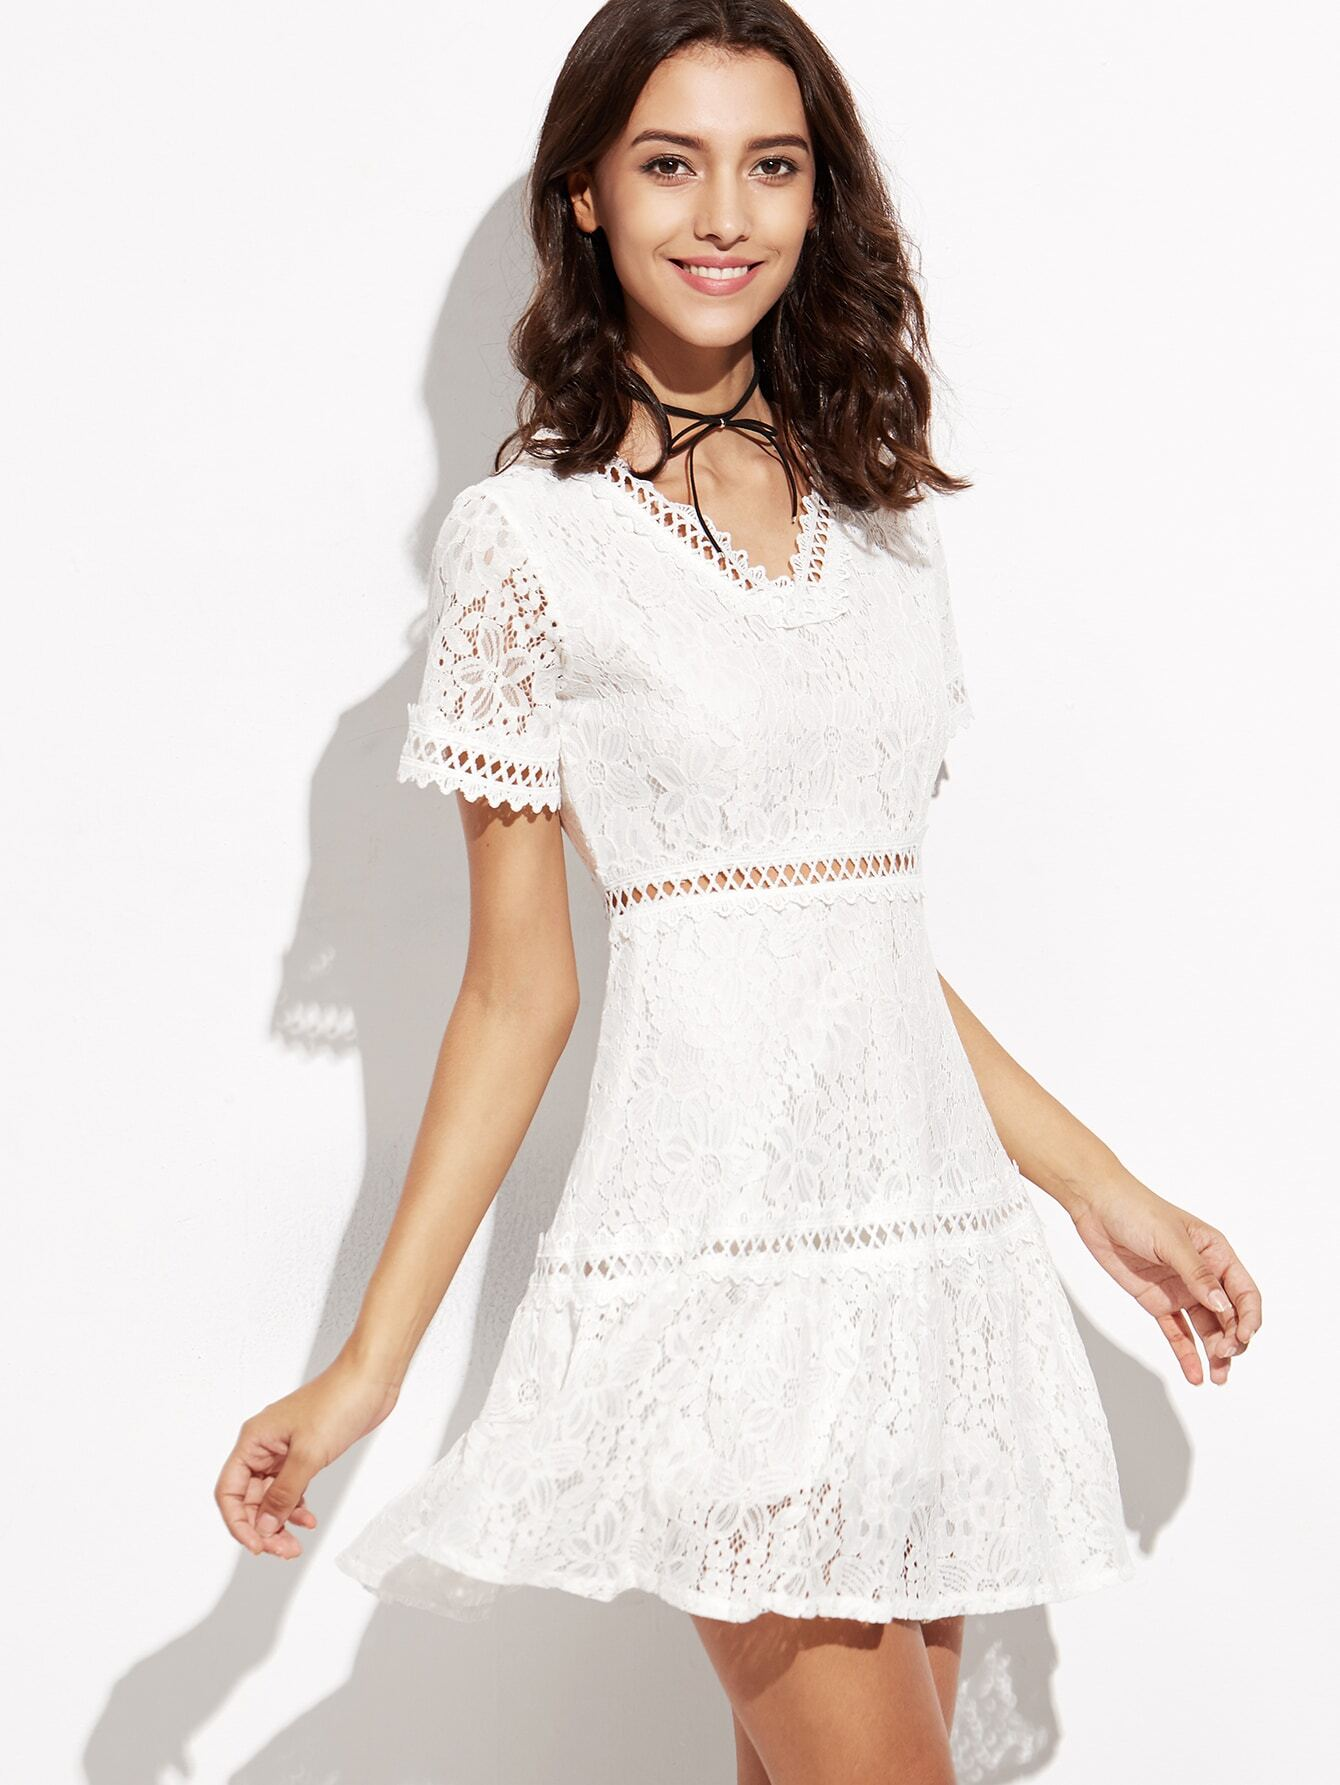 e1d4ffdaf217 White Lace Overlay Hollow Out A-Line Dress. dress160829303_1.  dress160829303_1. dress160829303_1. . dress160829303_2. dress160829303_2.  dress160829303_2